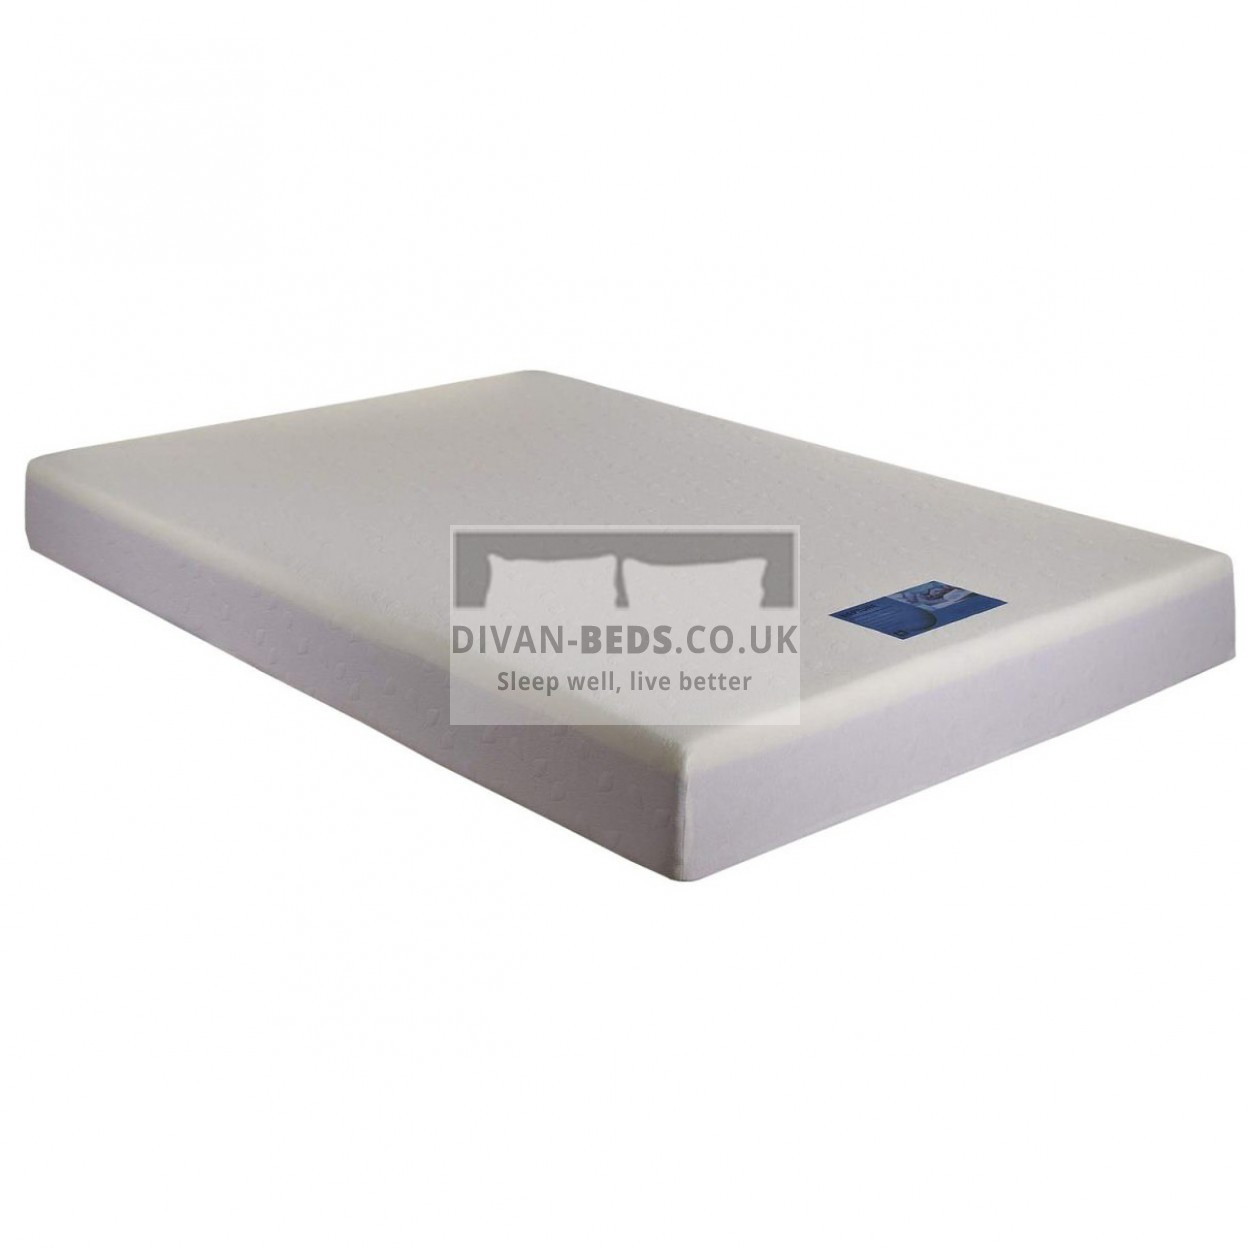 Full Memory Foam Mattress Guaranteed Cheapest Free